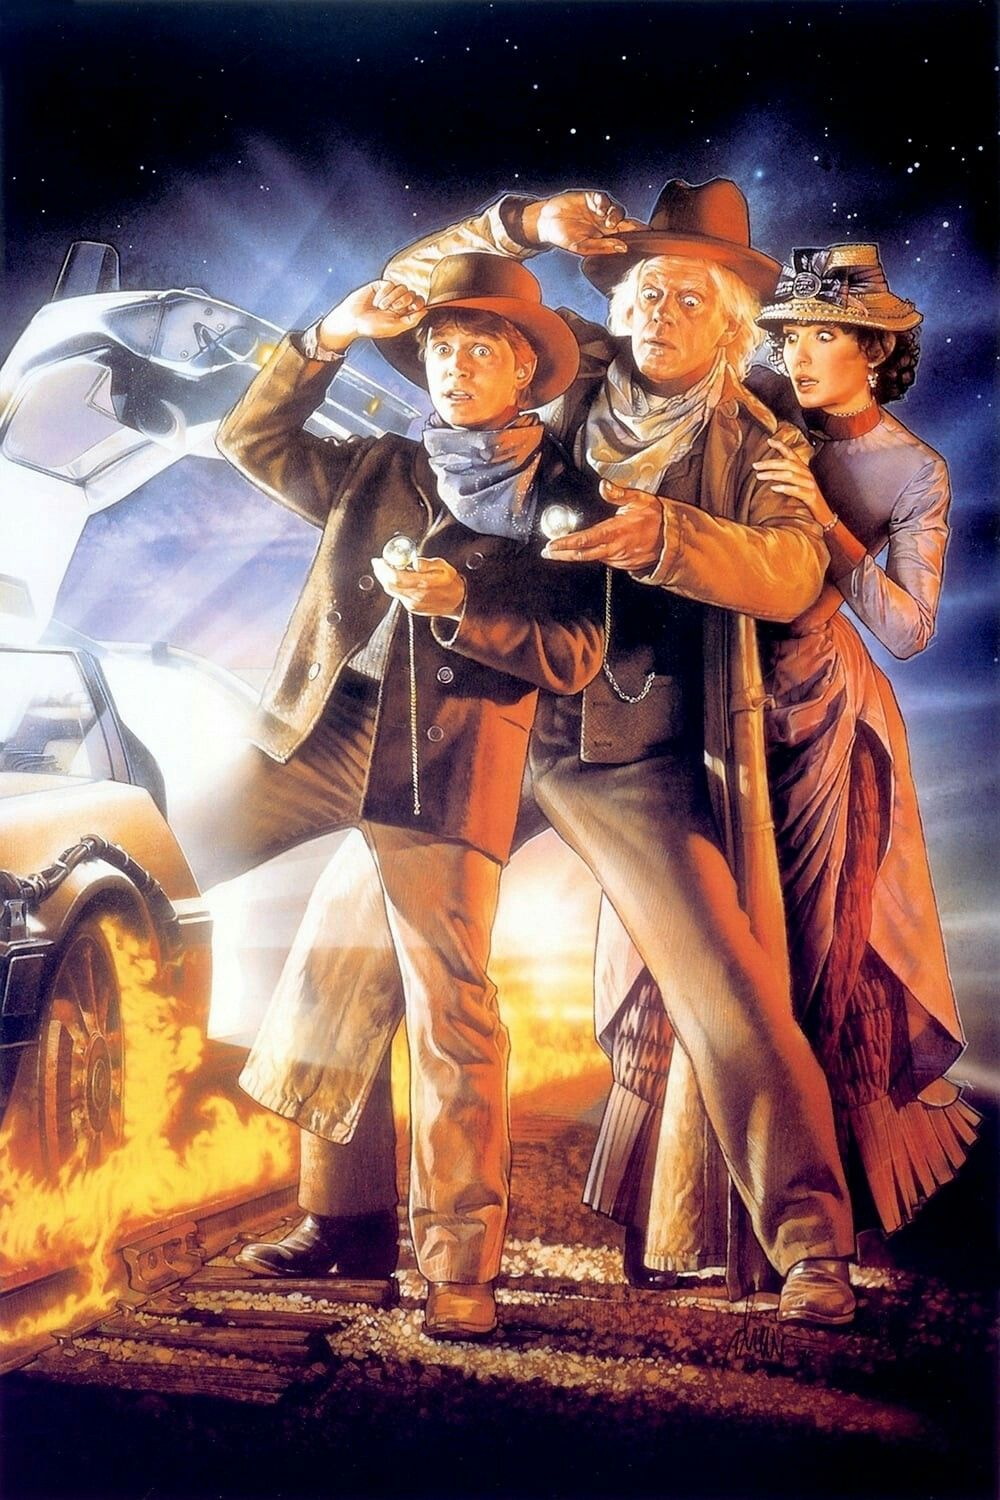 Back To The Future Part 3 Textless Movie Posters Backtothefuture